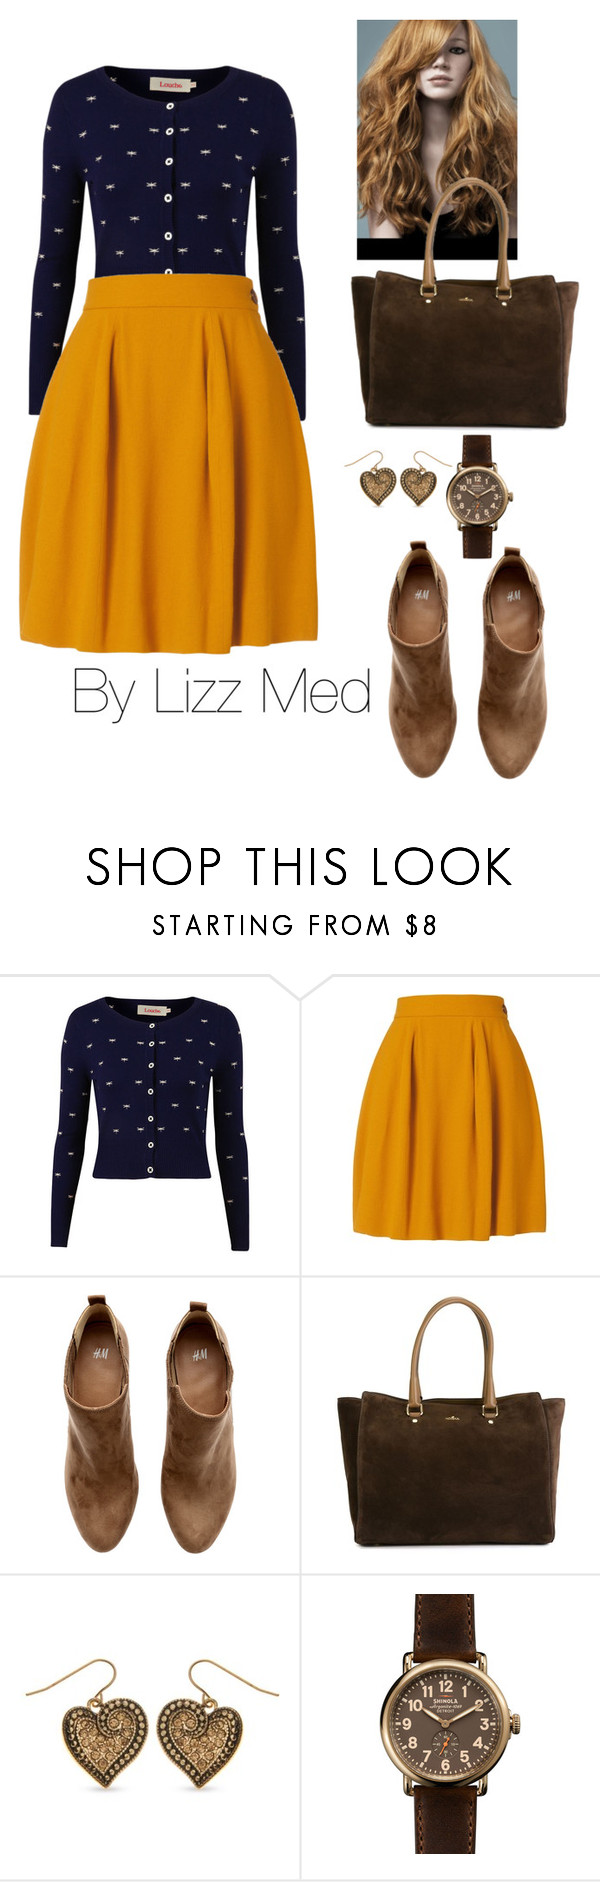 """Cool"" by lizz-med ❤ liked on Polyvore featuring Louche, H&M, Hogan, Kim Rogers and Shinola"